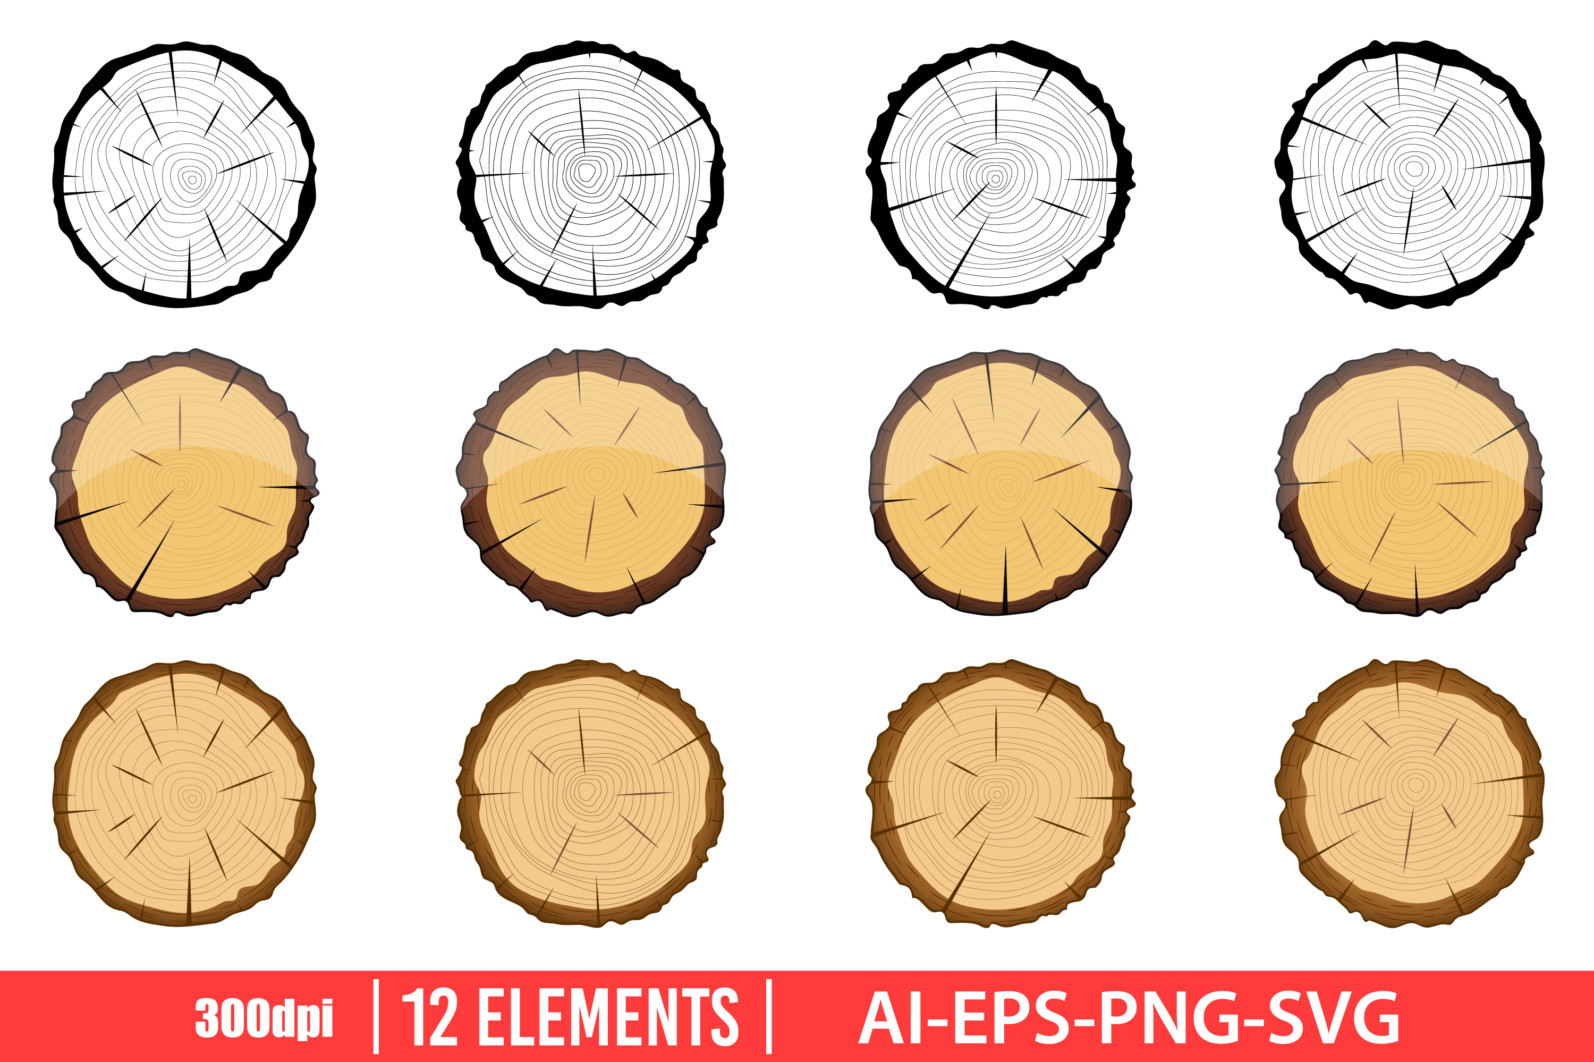 Cross section of wooden tree clipart design illustration. Vector Clipart Print - CROSS SECTION OF TREE scaled -